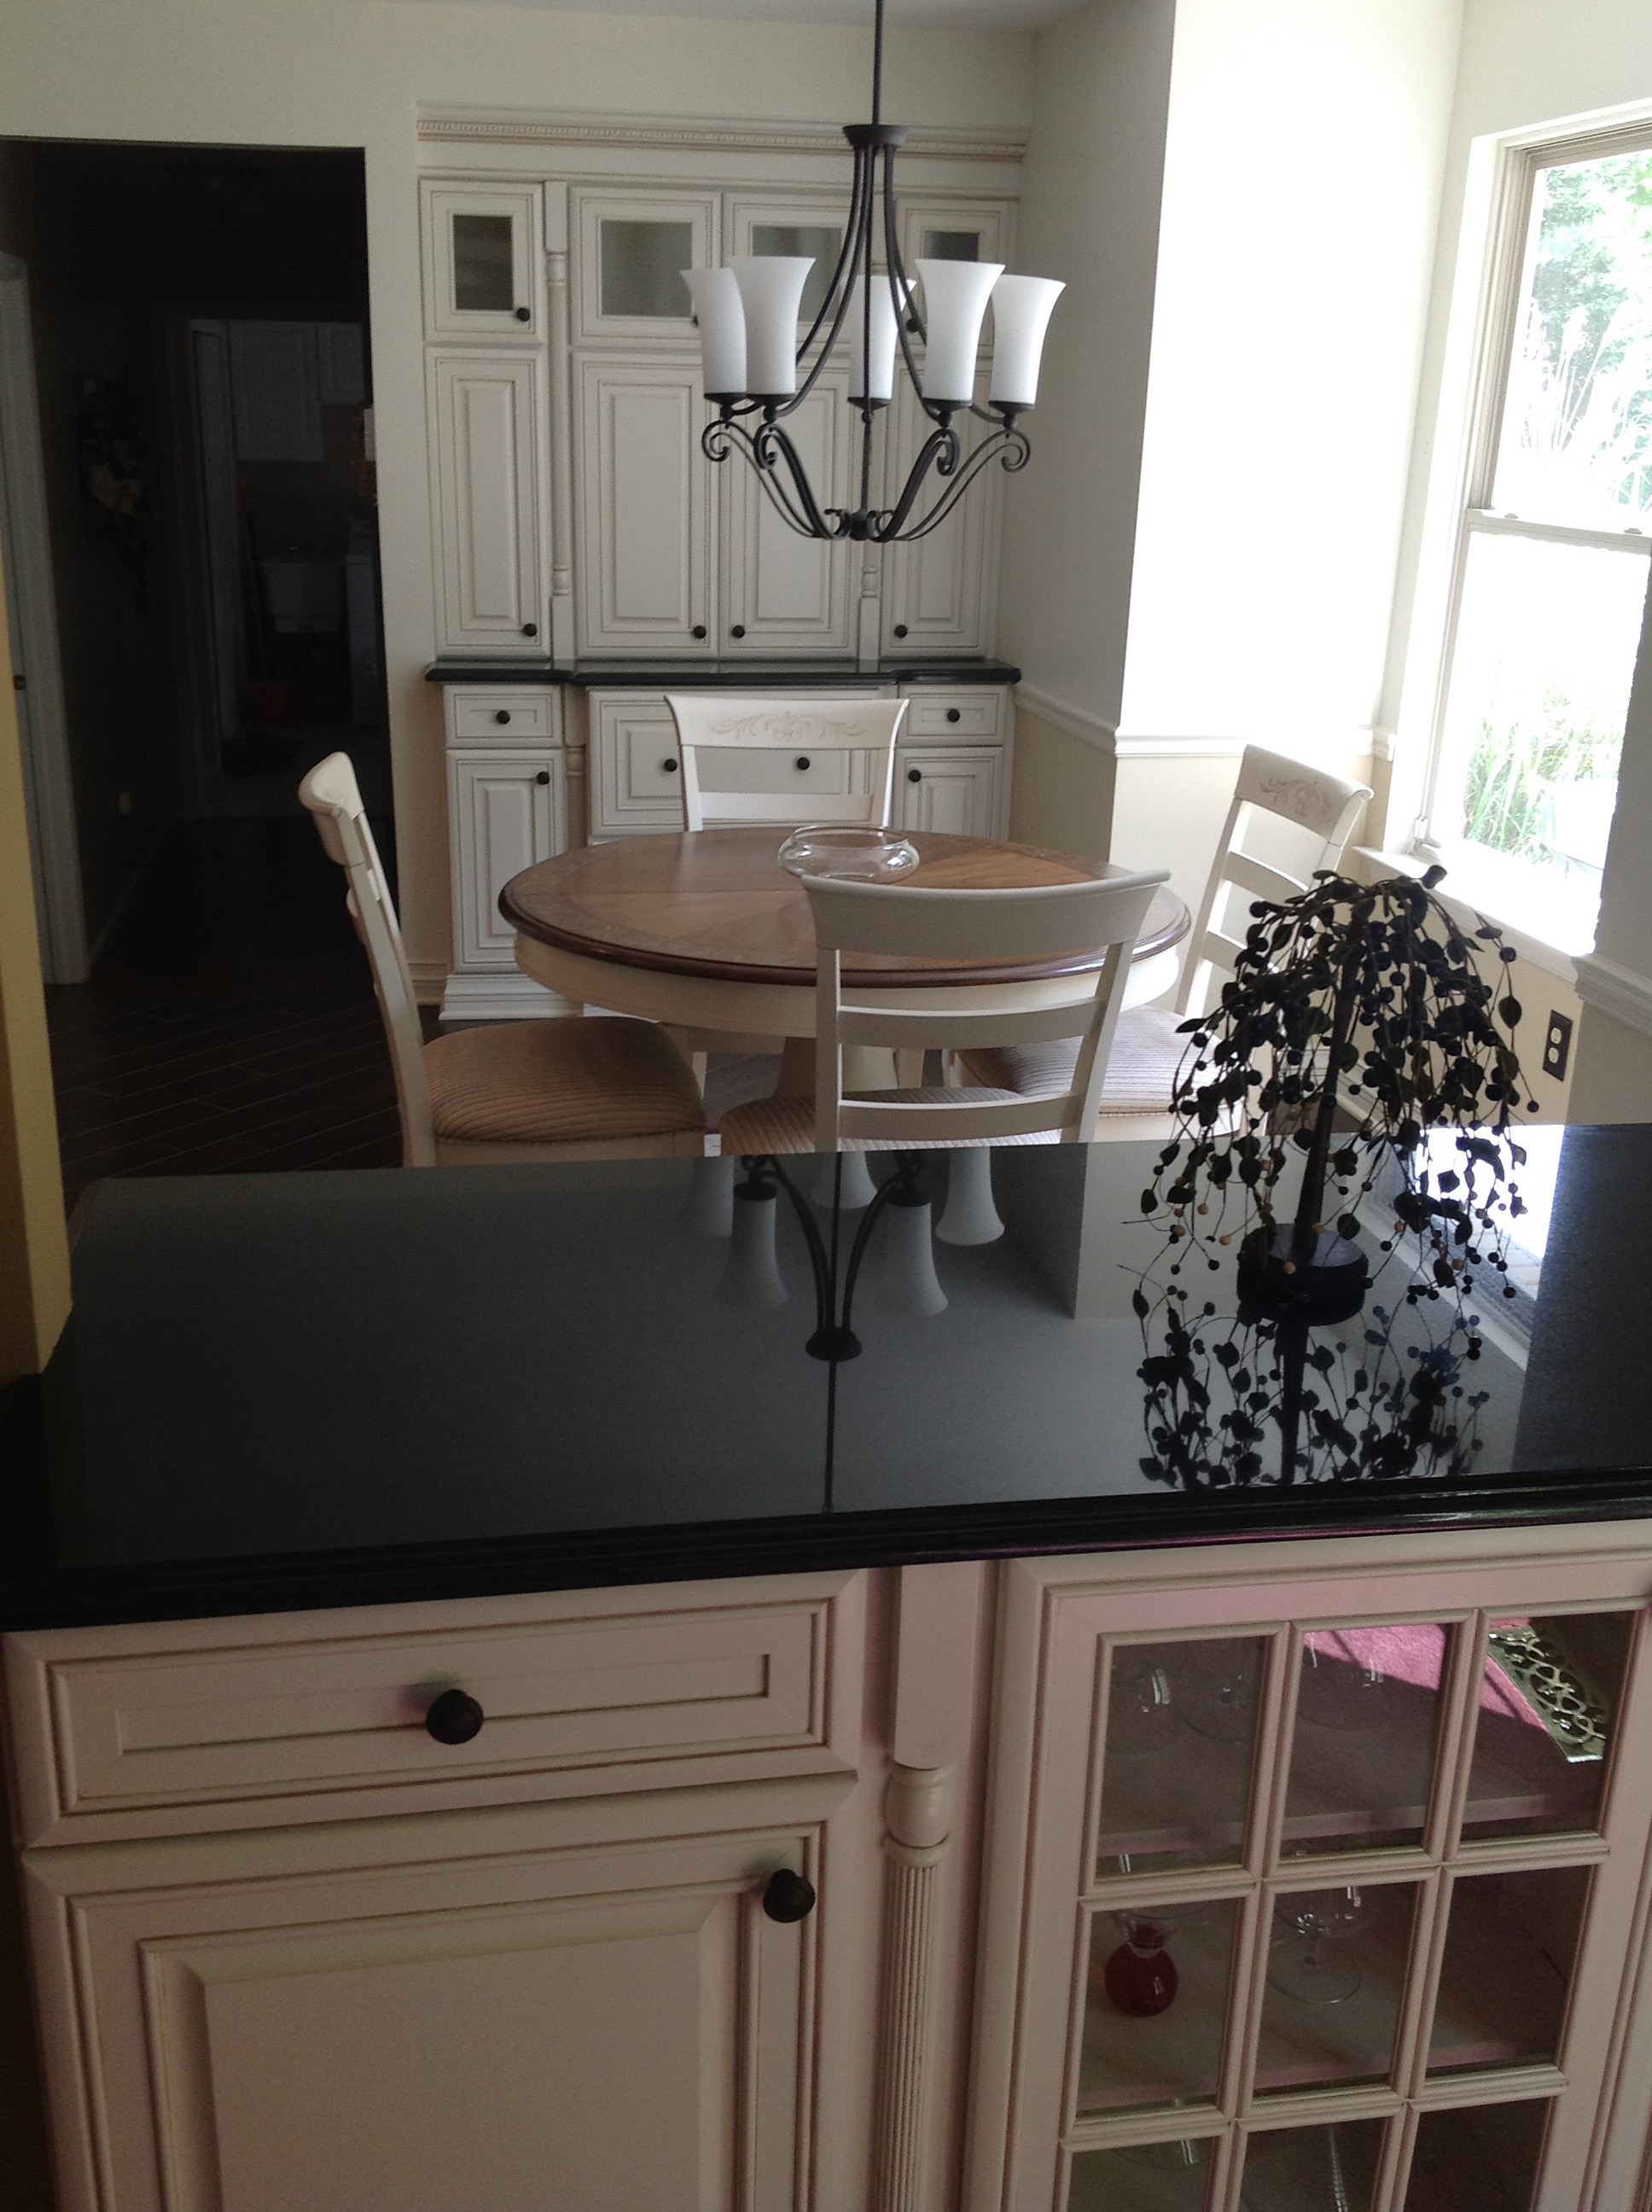 south jersey kitchen remodeling exhaust hoods renovation in sewell located a